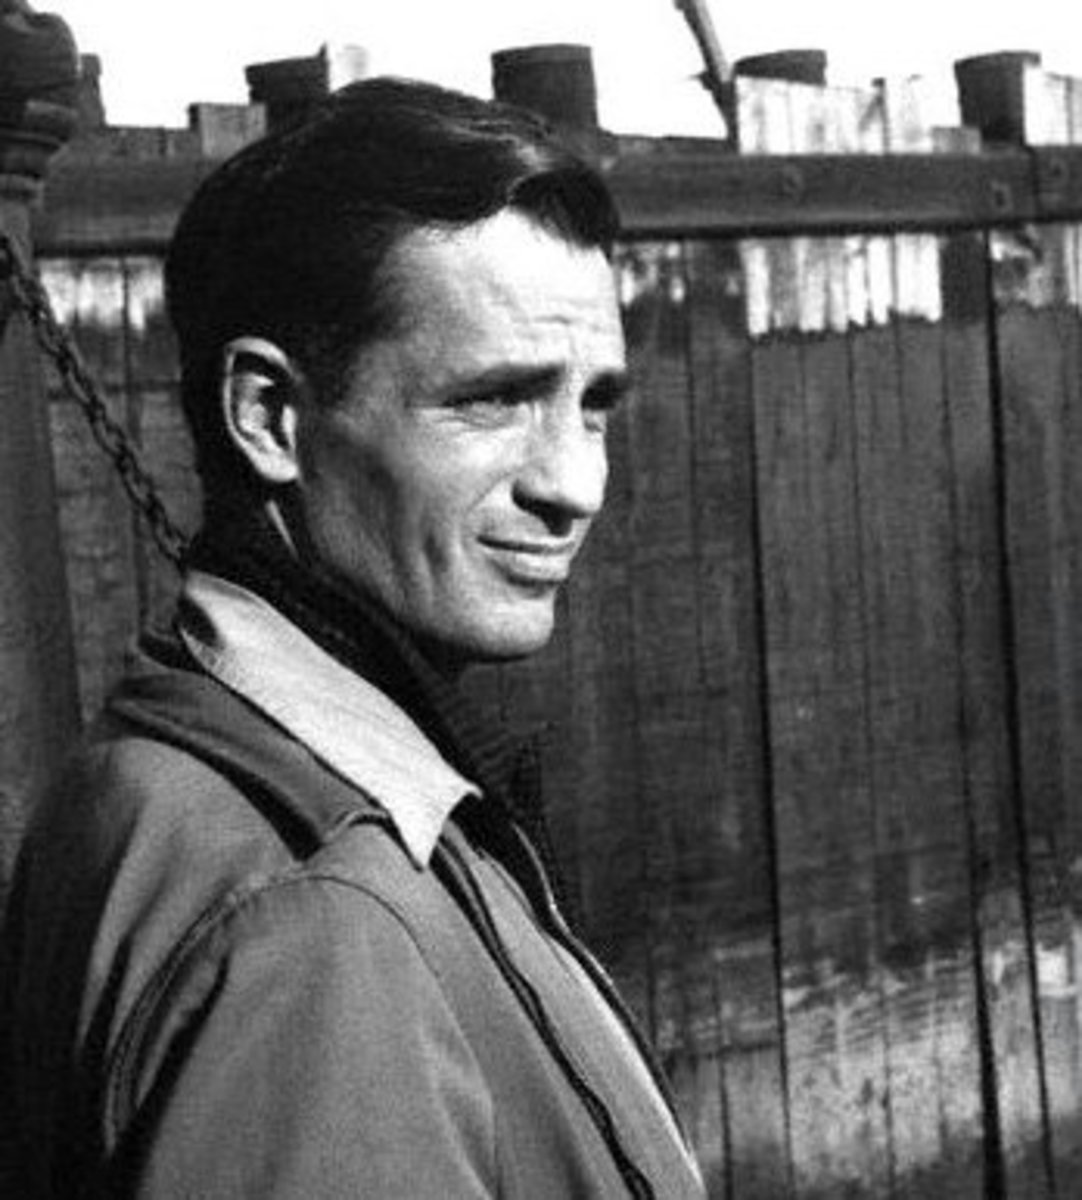 on the road by jack kerouac essay On the road research papers explore a book by jack kerouac about the adventures of four friends driving across country drinking, talking, and creating poetry.